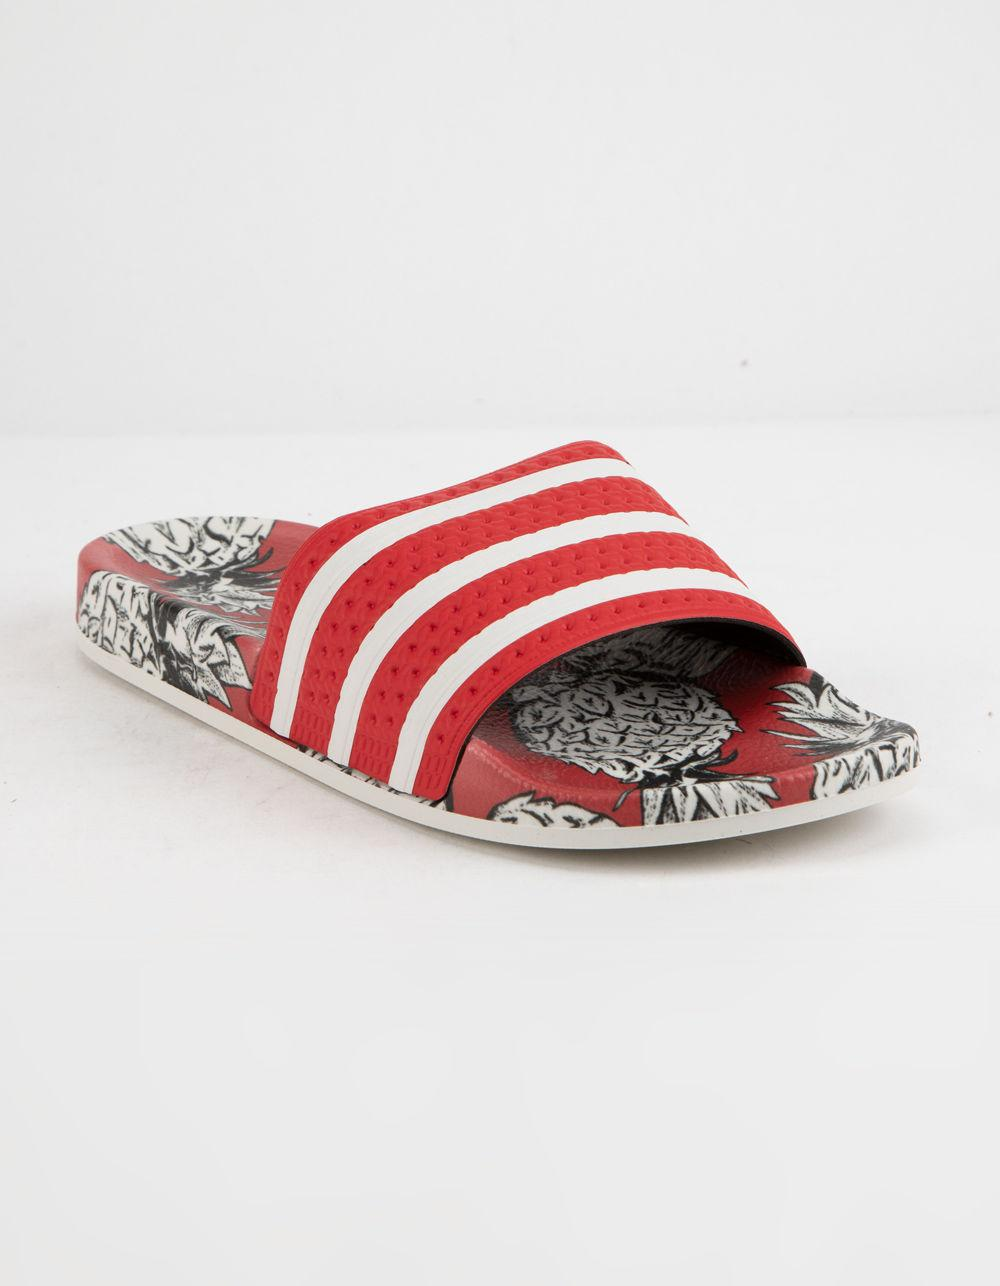 official photos 8aadf d3dc6 Lyst Adidas Adilette Scarlet Off White Womens Slides In Red